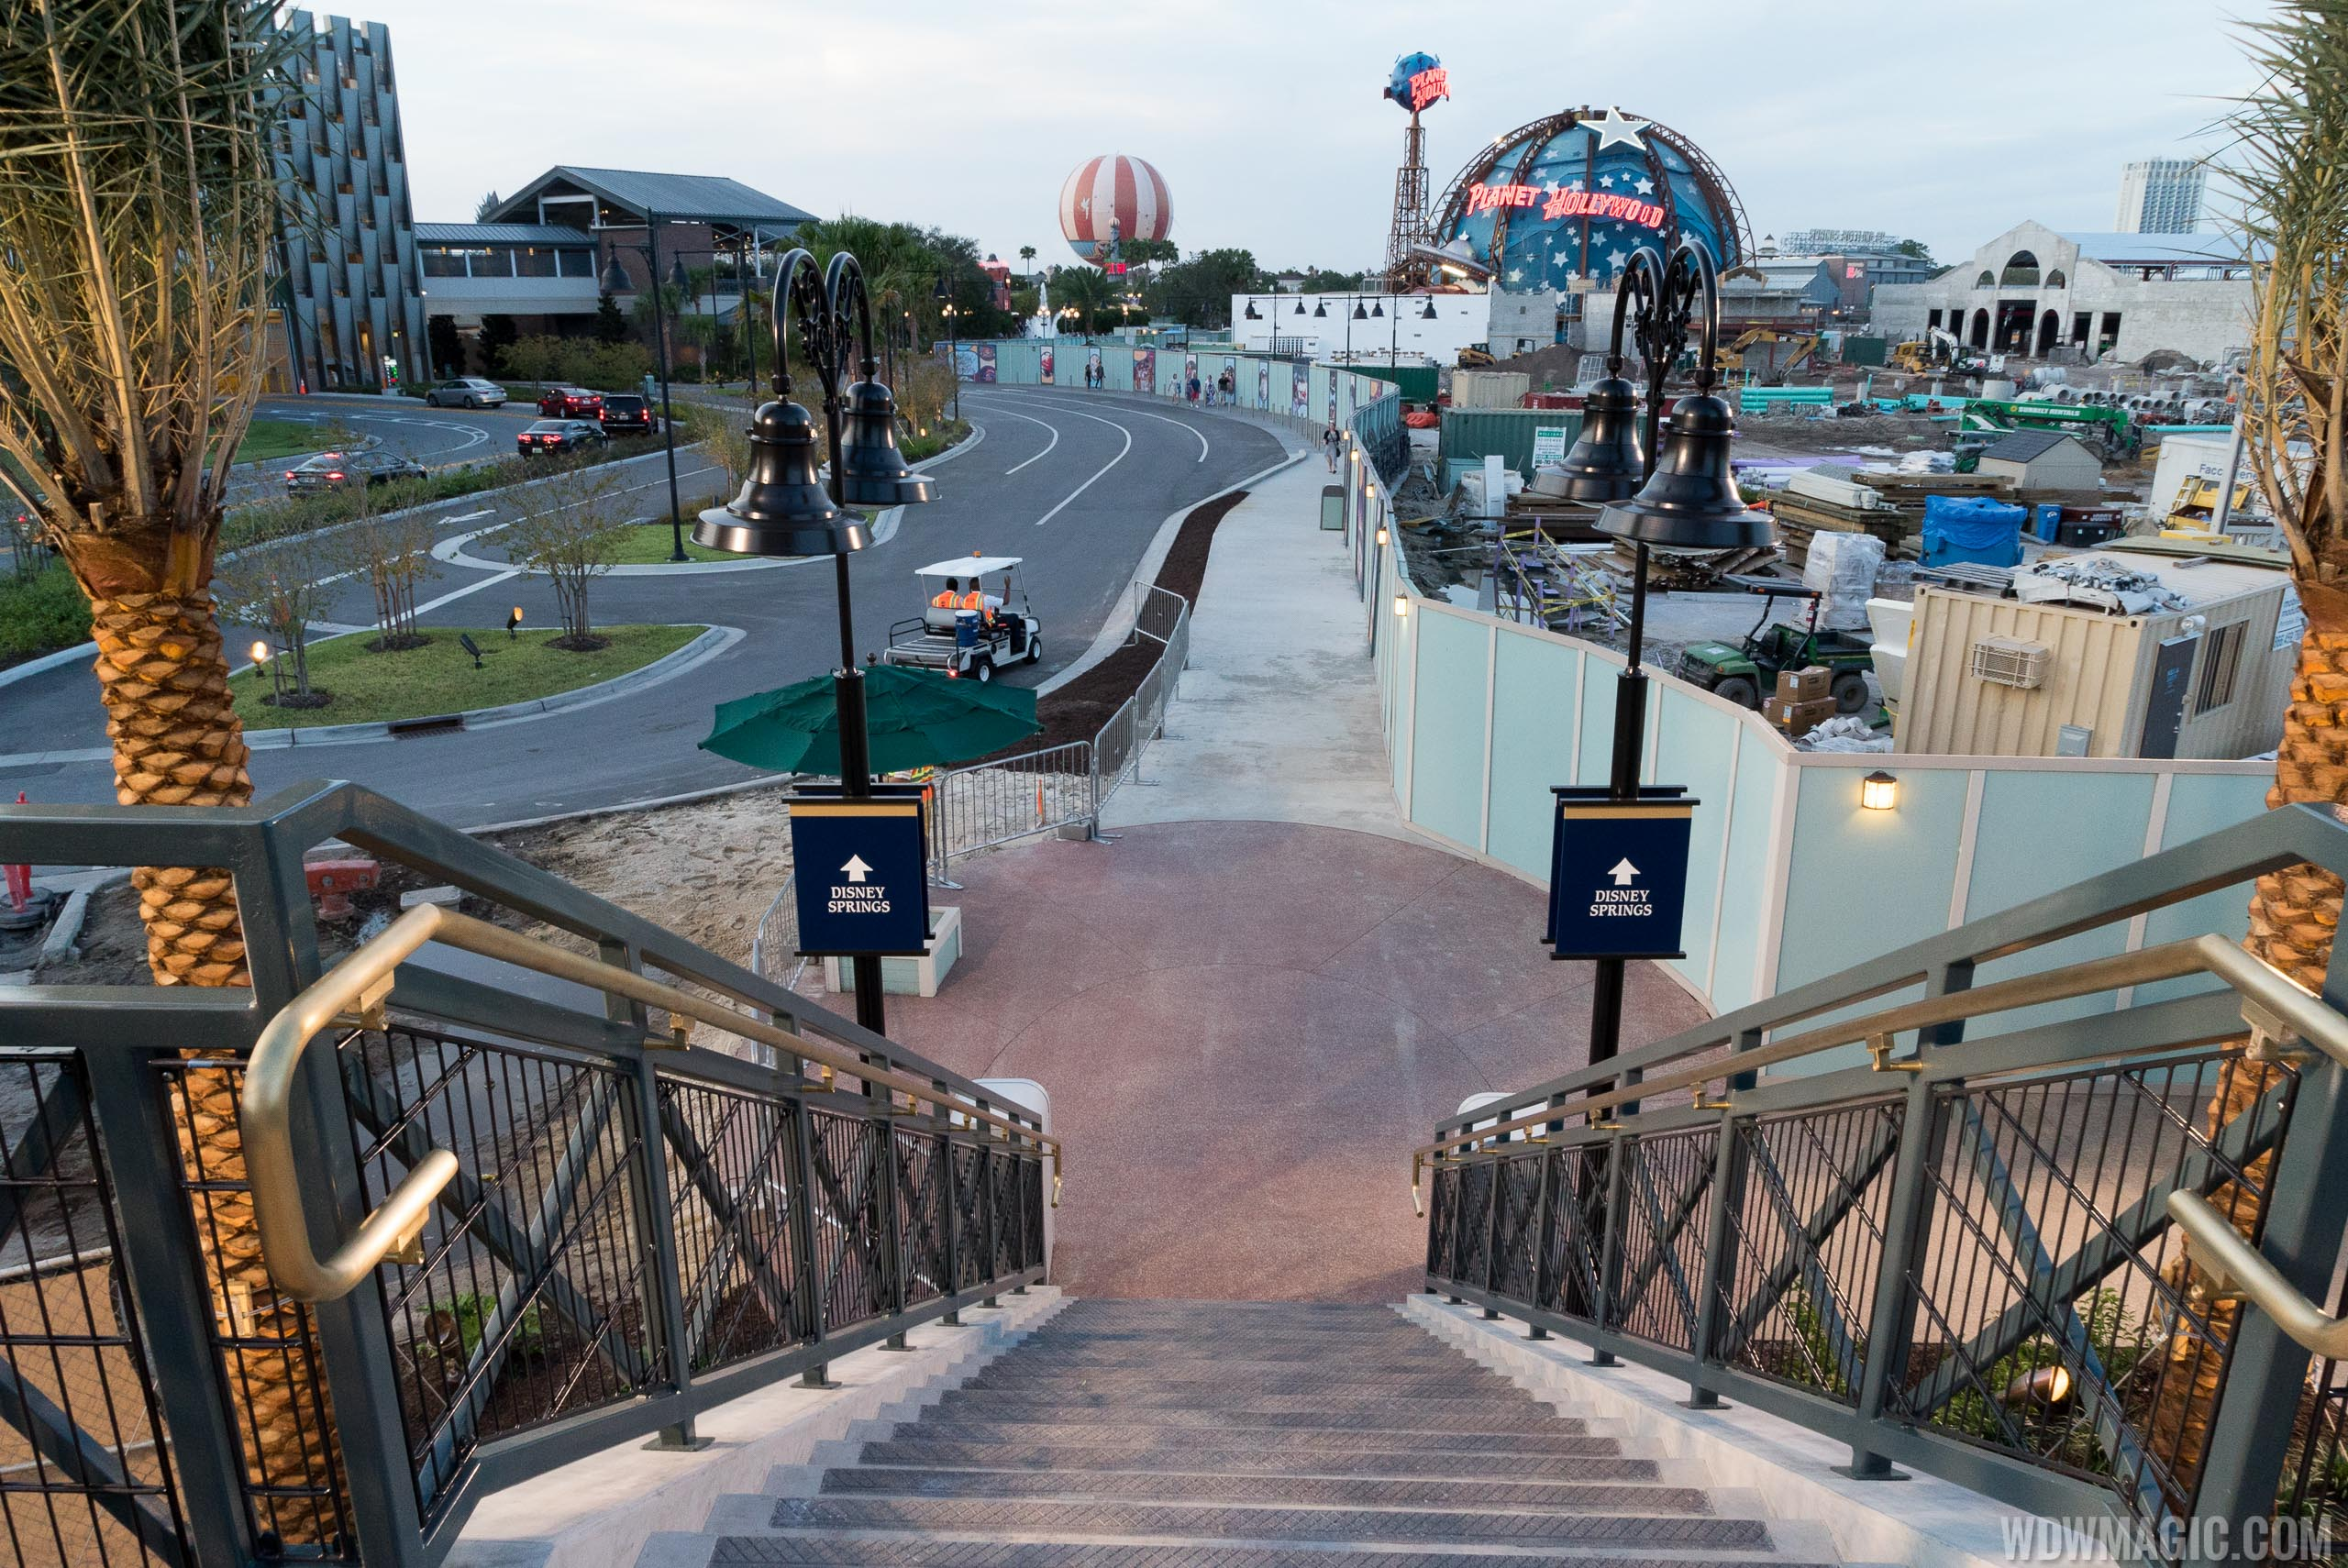 Descending the staircase to Disney Springs